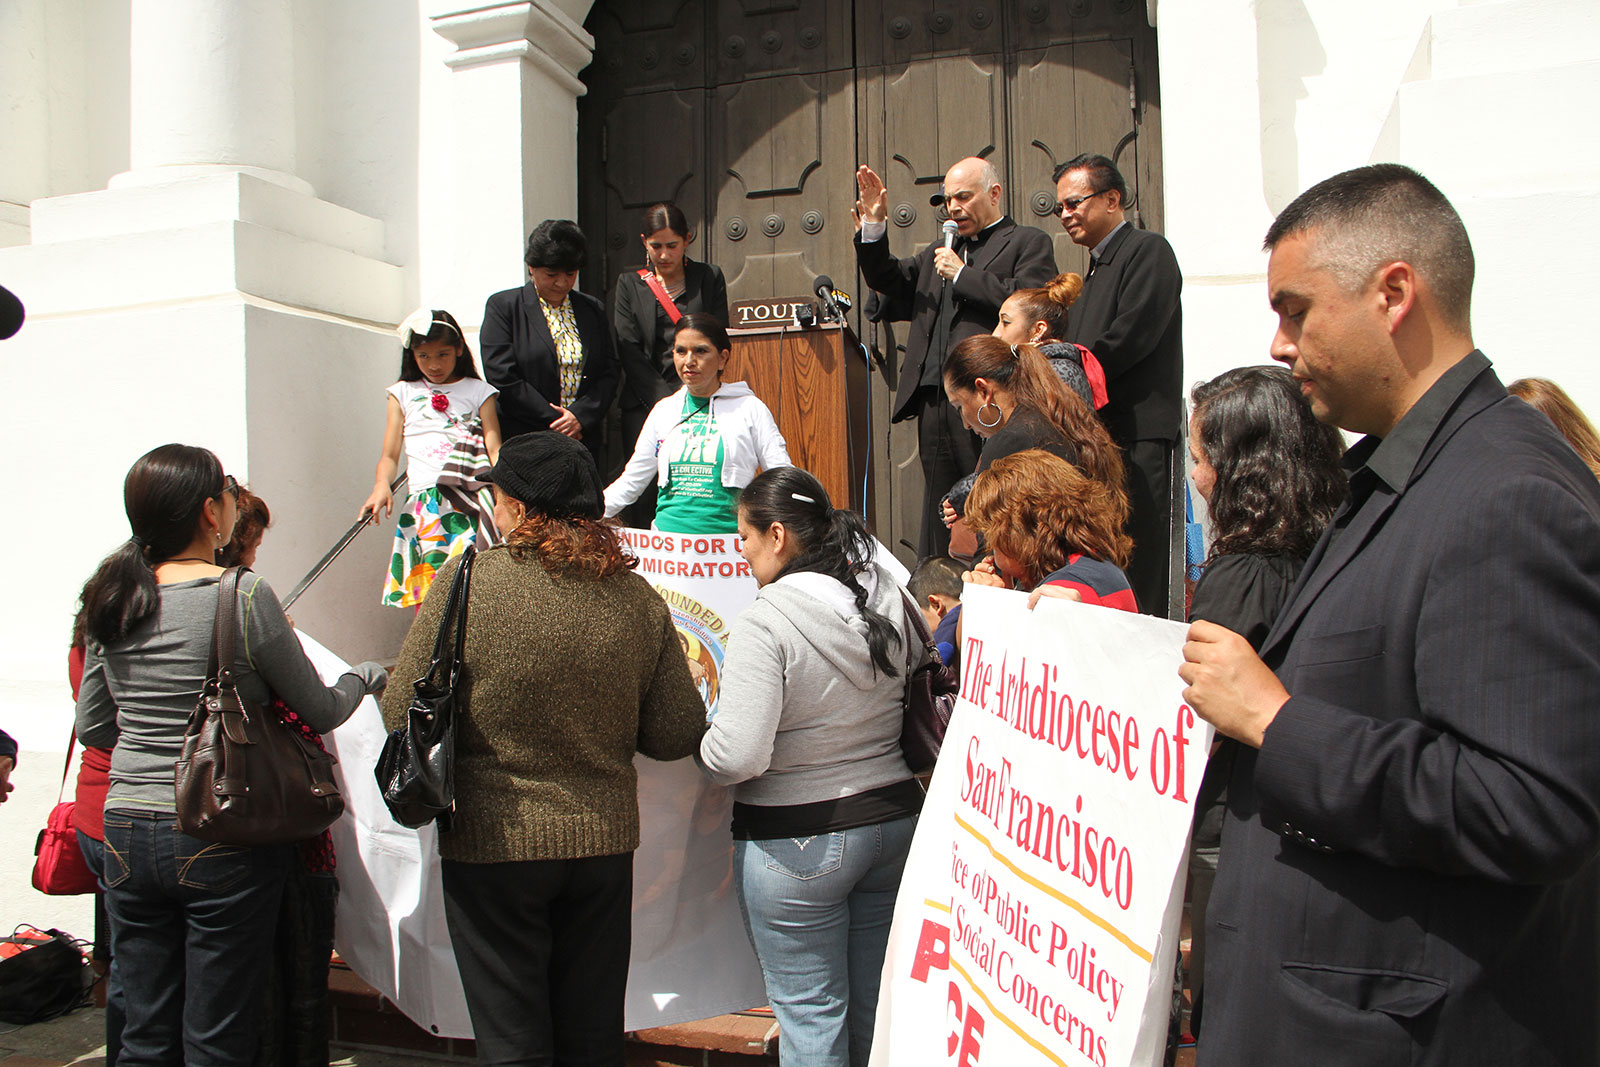 San Francisco Salvatore Cordileone gives a blessing to a crowd of immigration reform activists, May 13. Photo by Tay Wiles.